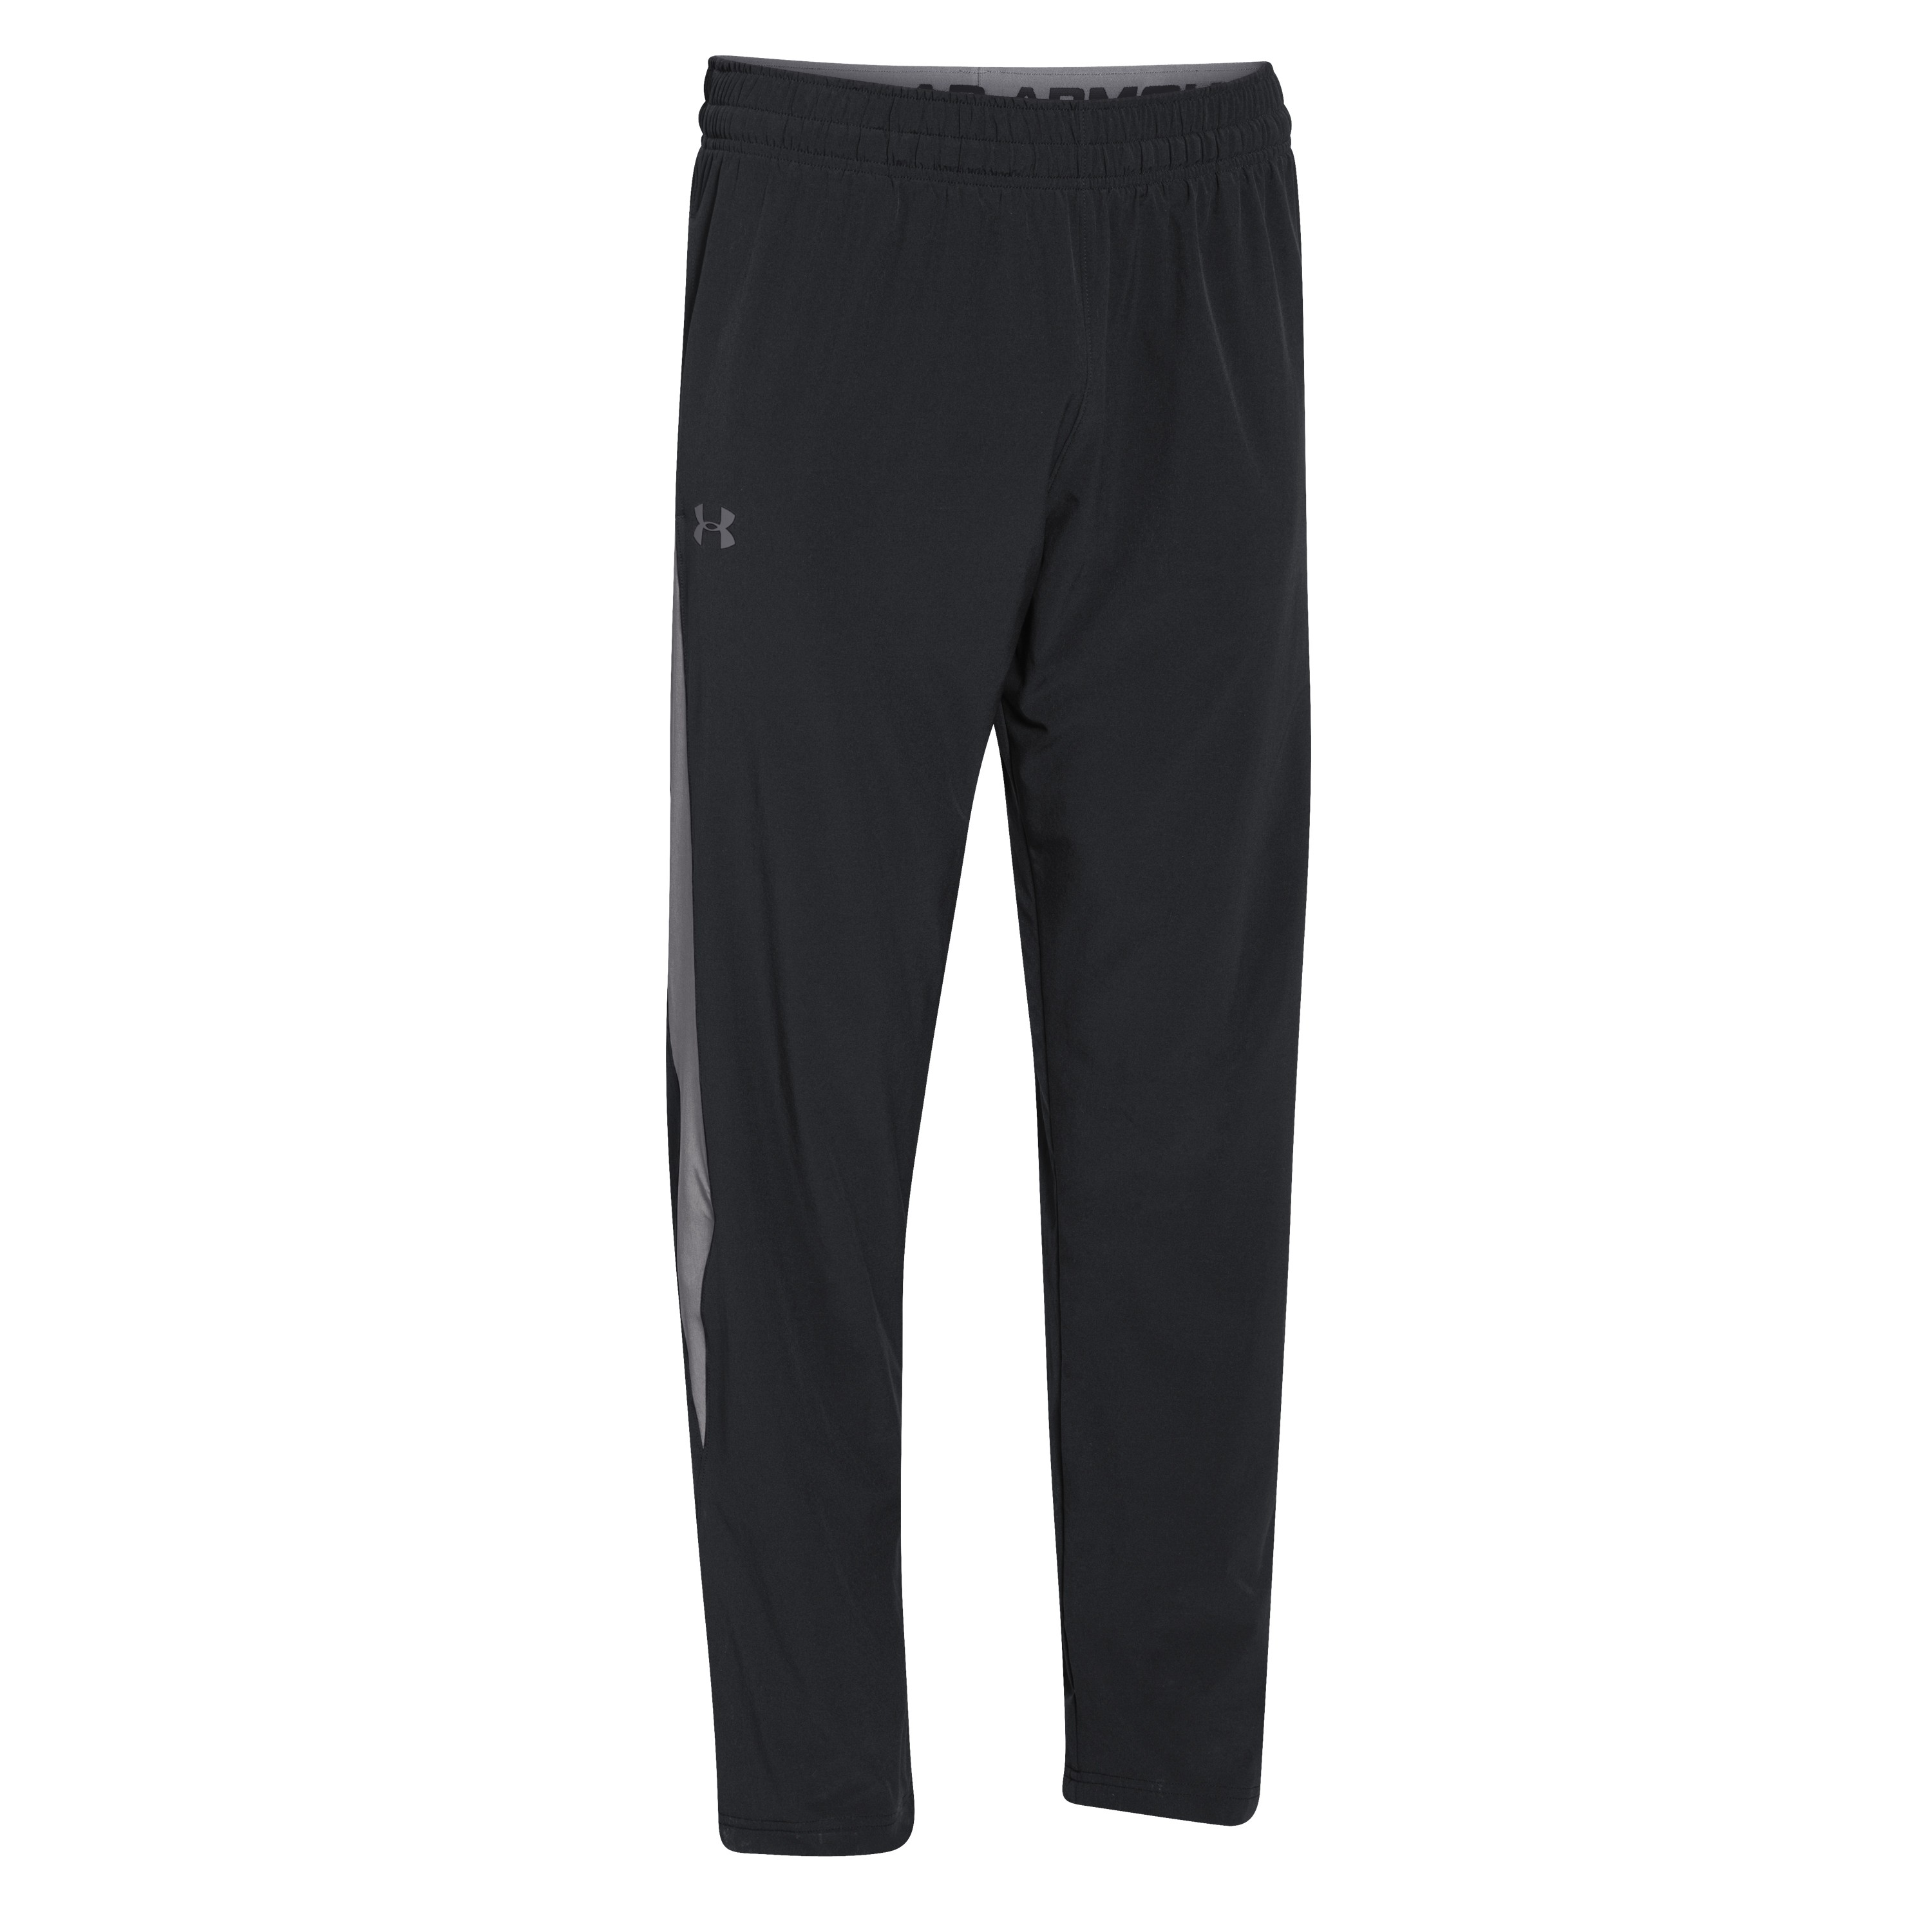 Under Amour Stretch Pants Woven Track black